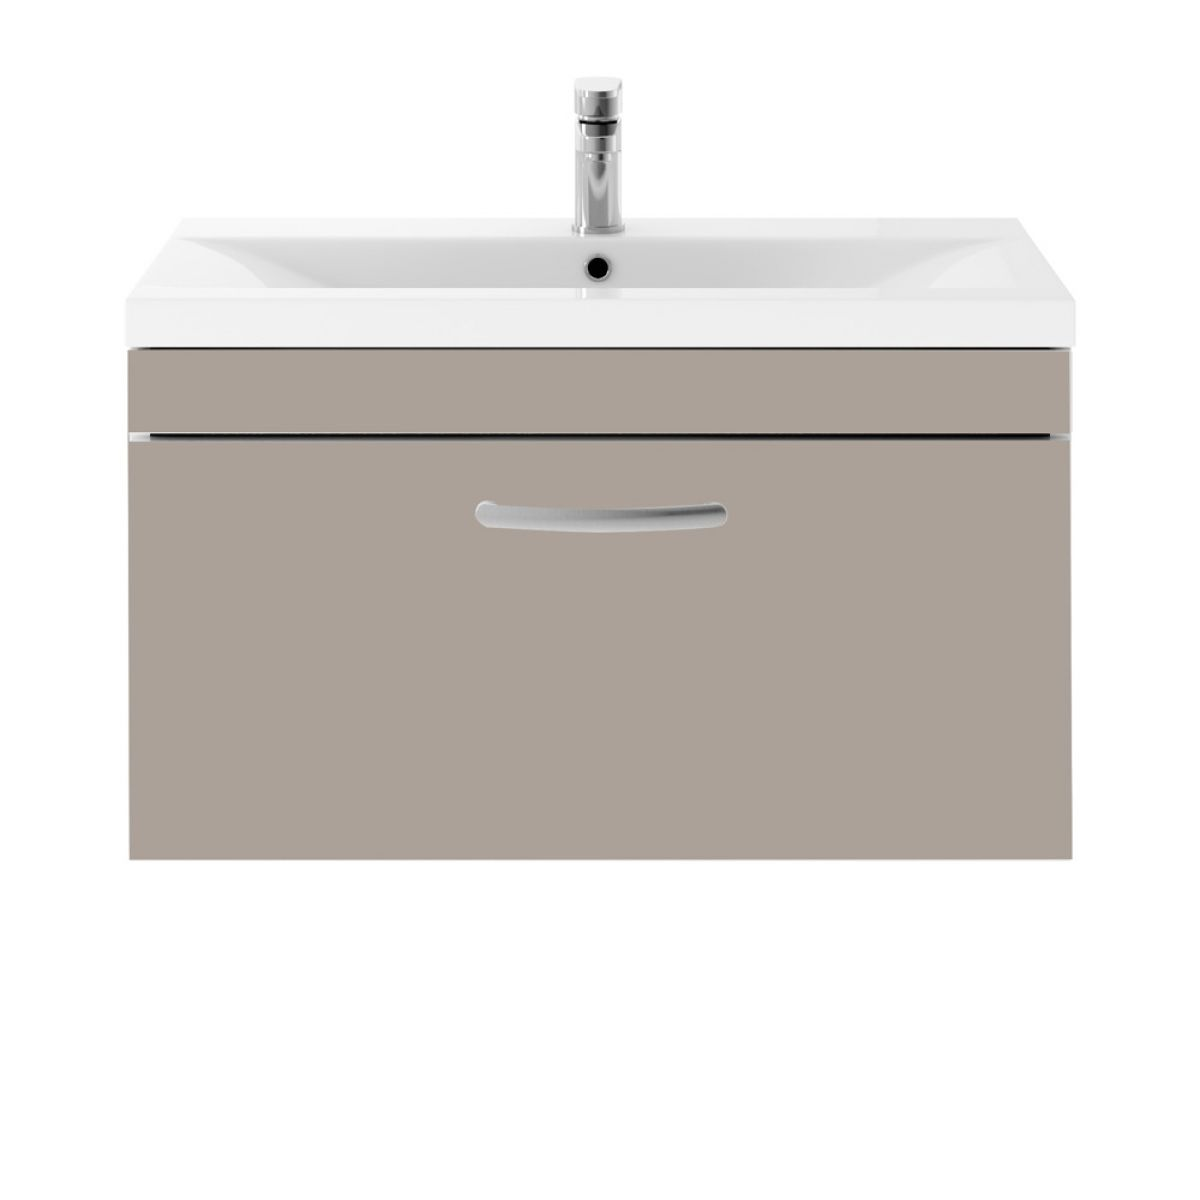 Premier Athena Stone Grey 1 Drawer Wall Hung Vanity Unit 800mm with Mid Edge Basin